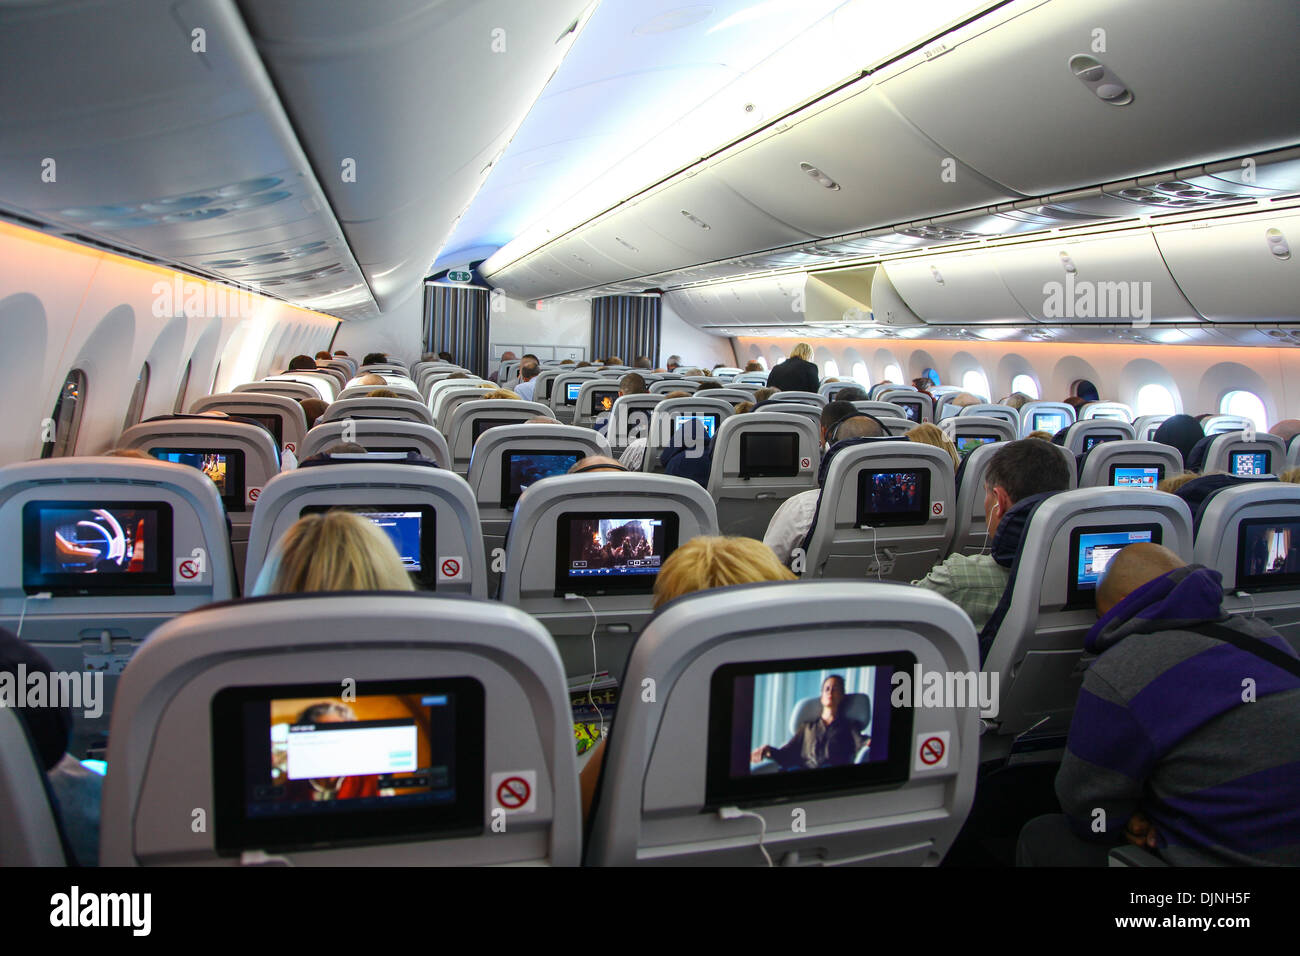 Interior Of A Boeing 787 Dreamliner Thompson Airways Aircraft Showing The  Individual Passenger In Flight Entertainment Screen